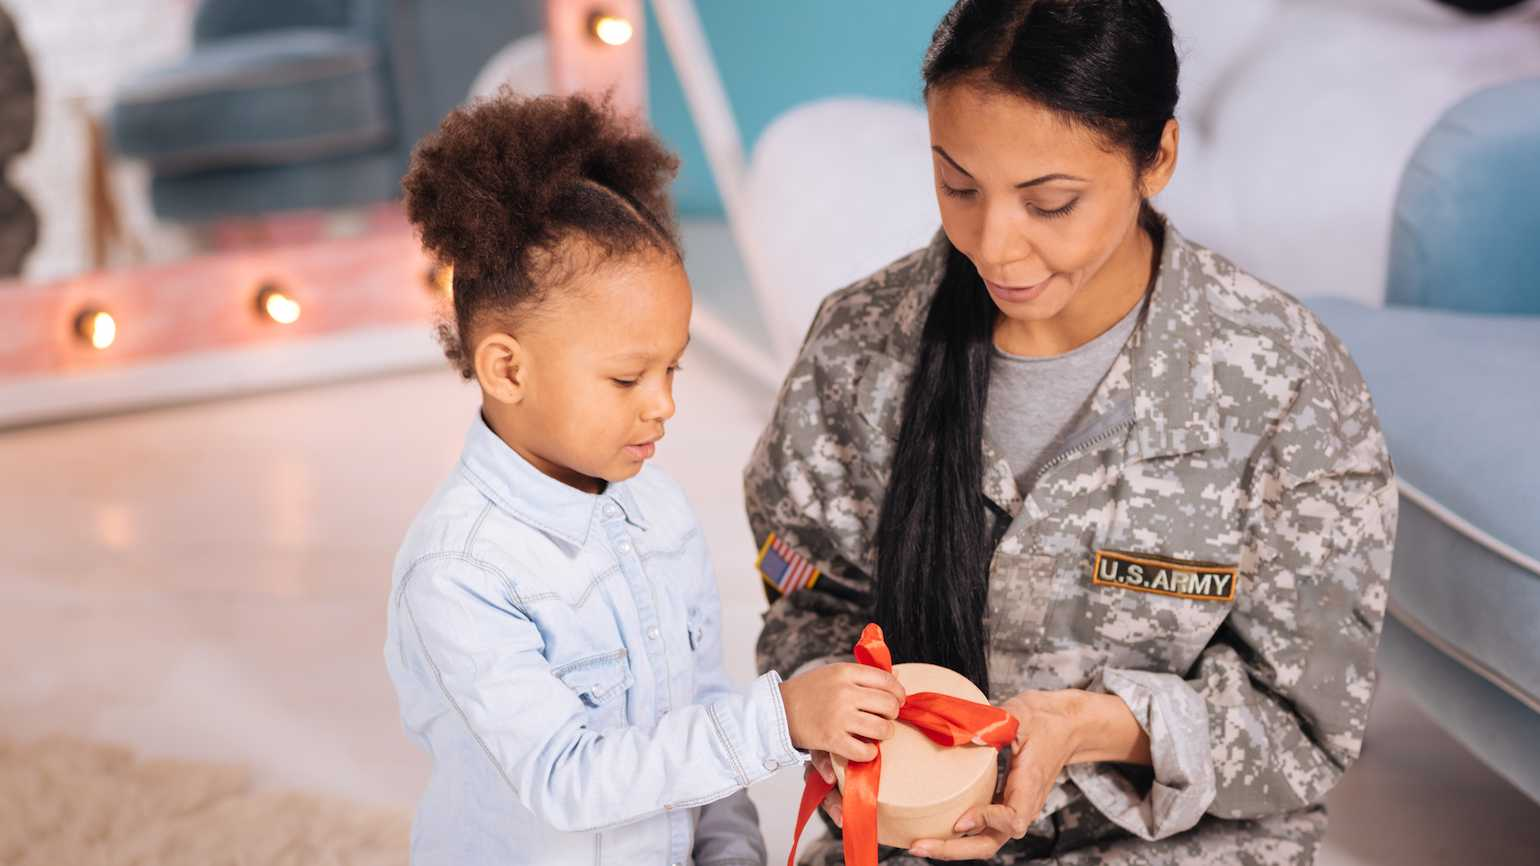 Military and Valentine's Day